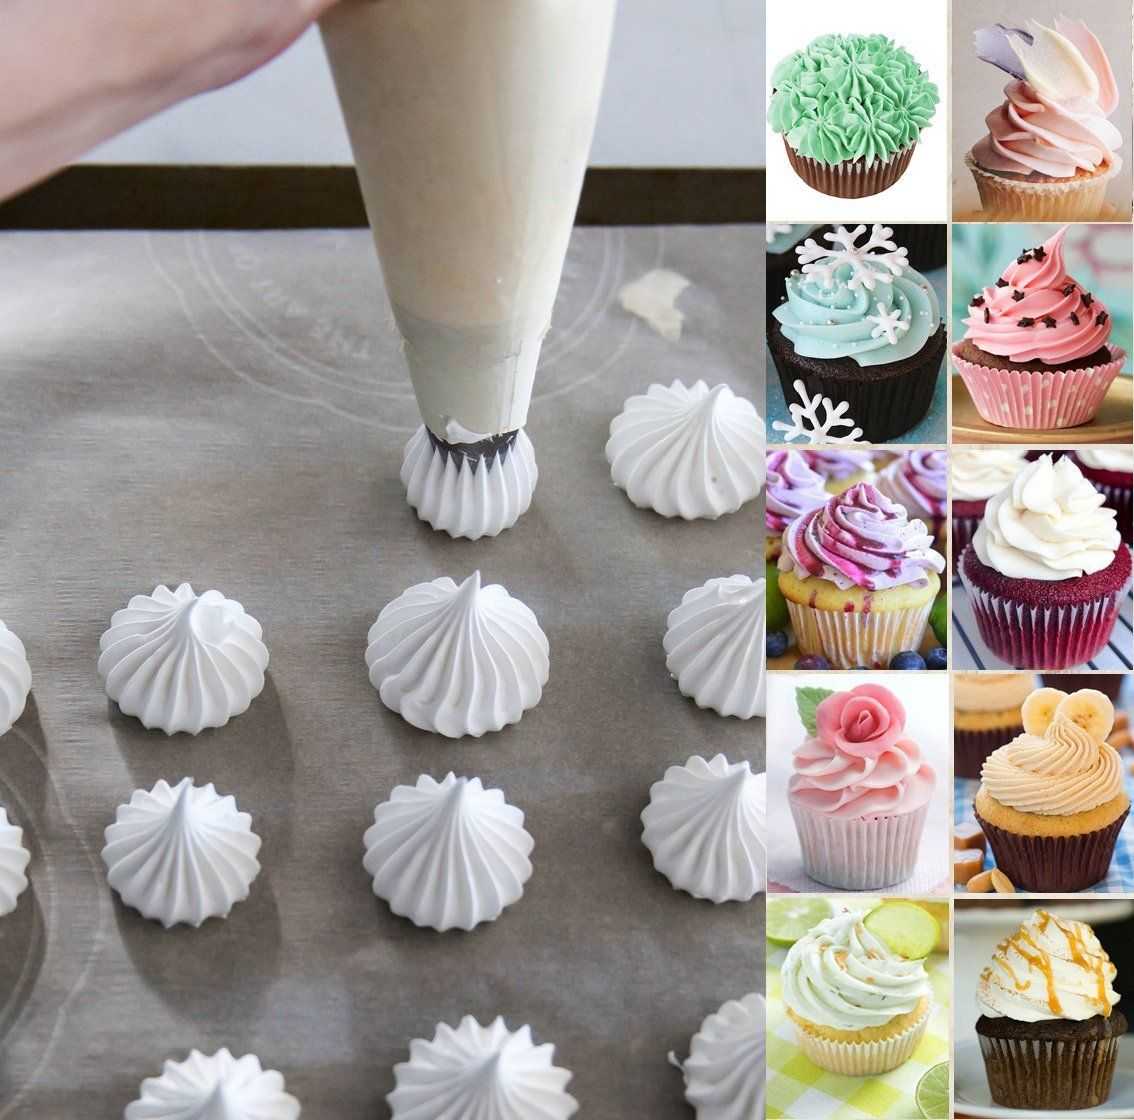 Amazon Com Cake Decorating Icing Piping Tip Set 8 X Large Decorating Tips For Cakes 10 Thic Cake Decorating Supplies Cupcake Decorating Tips Cake Decorating